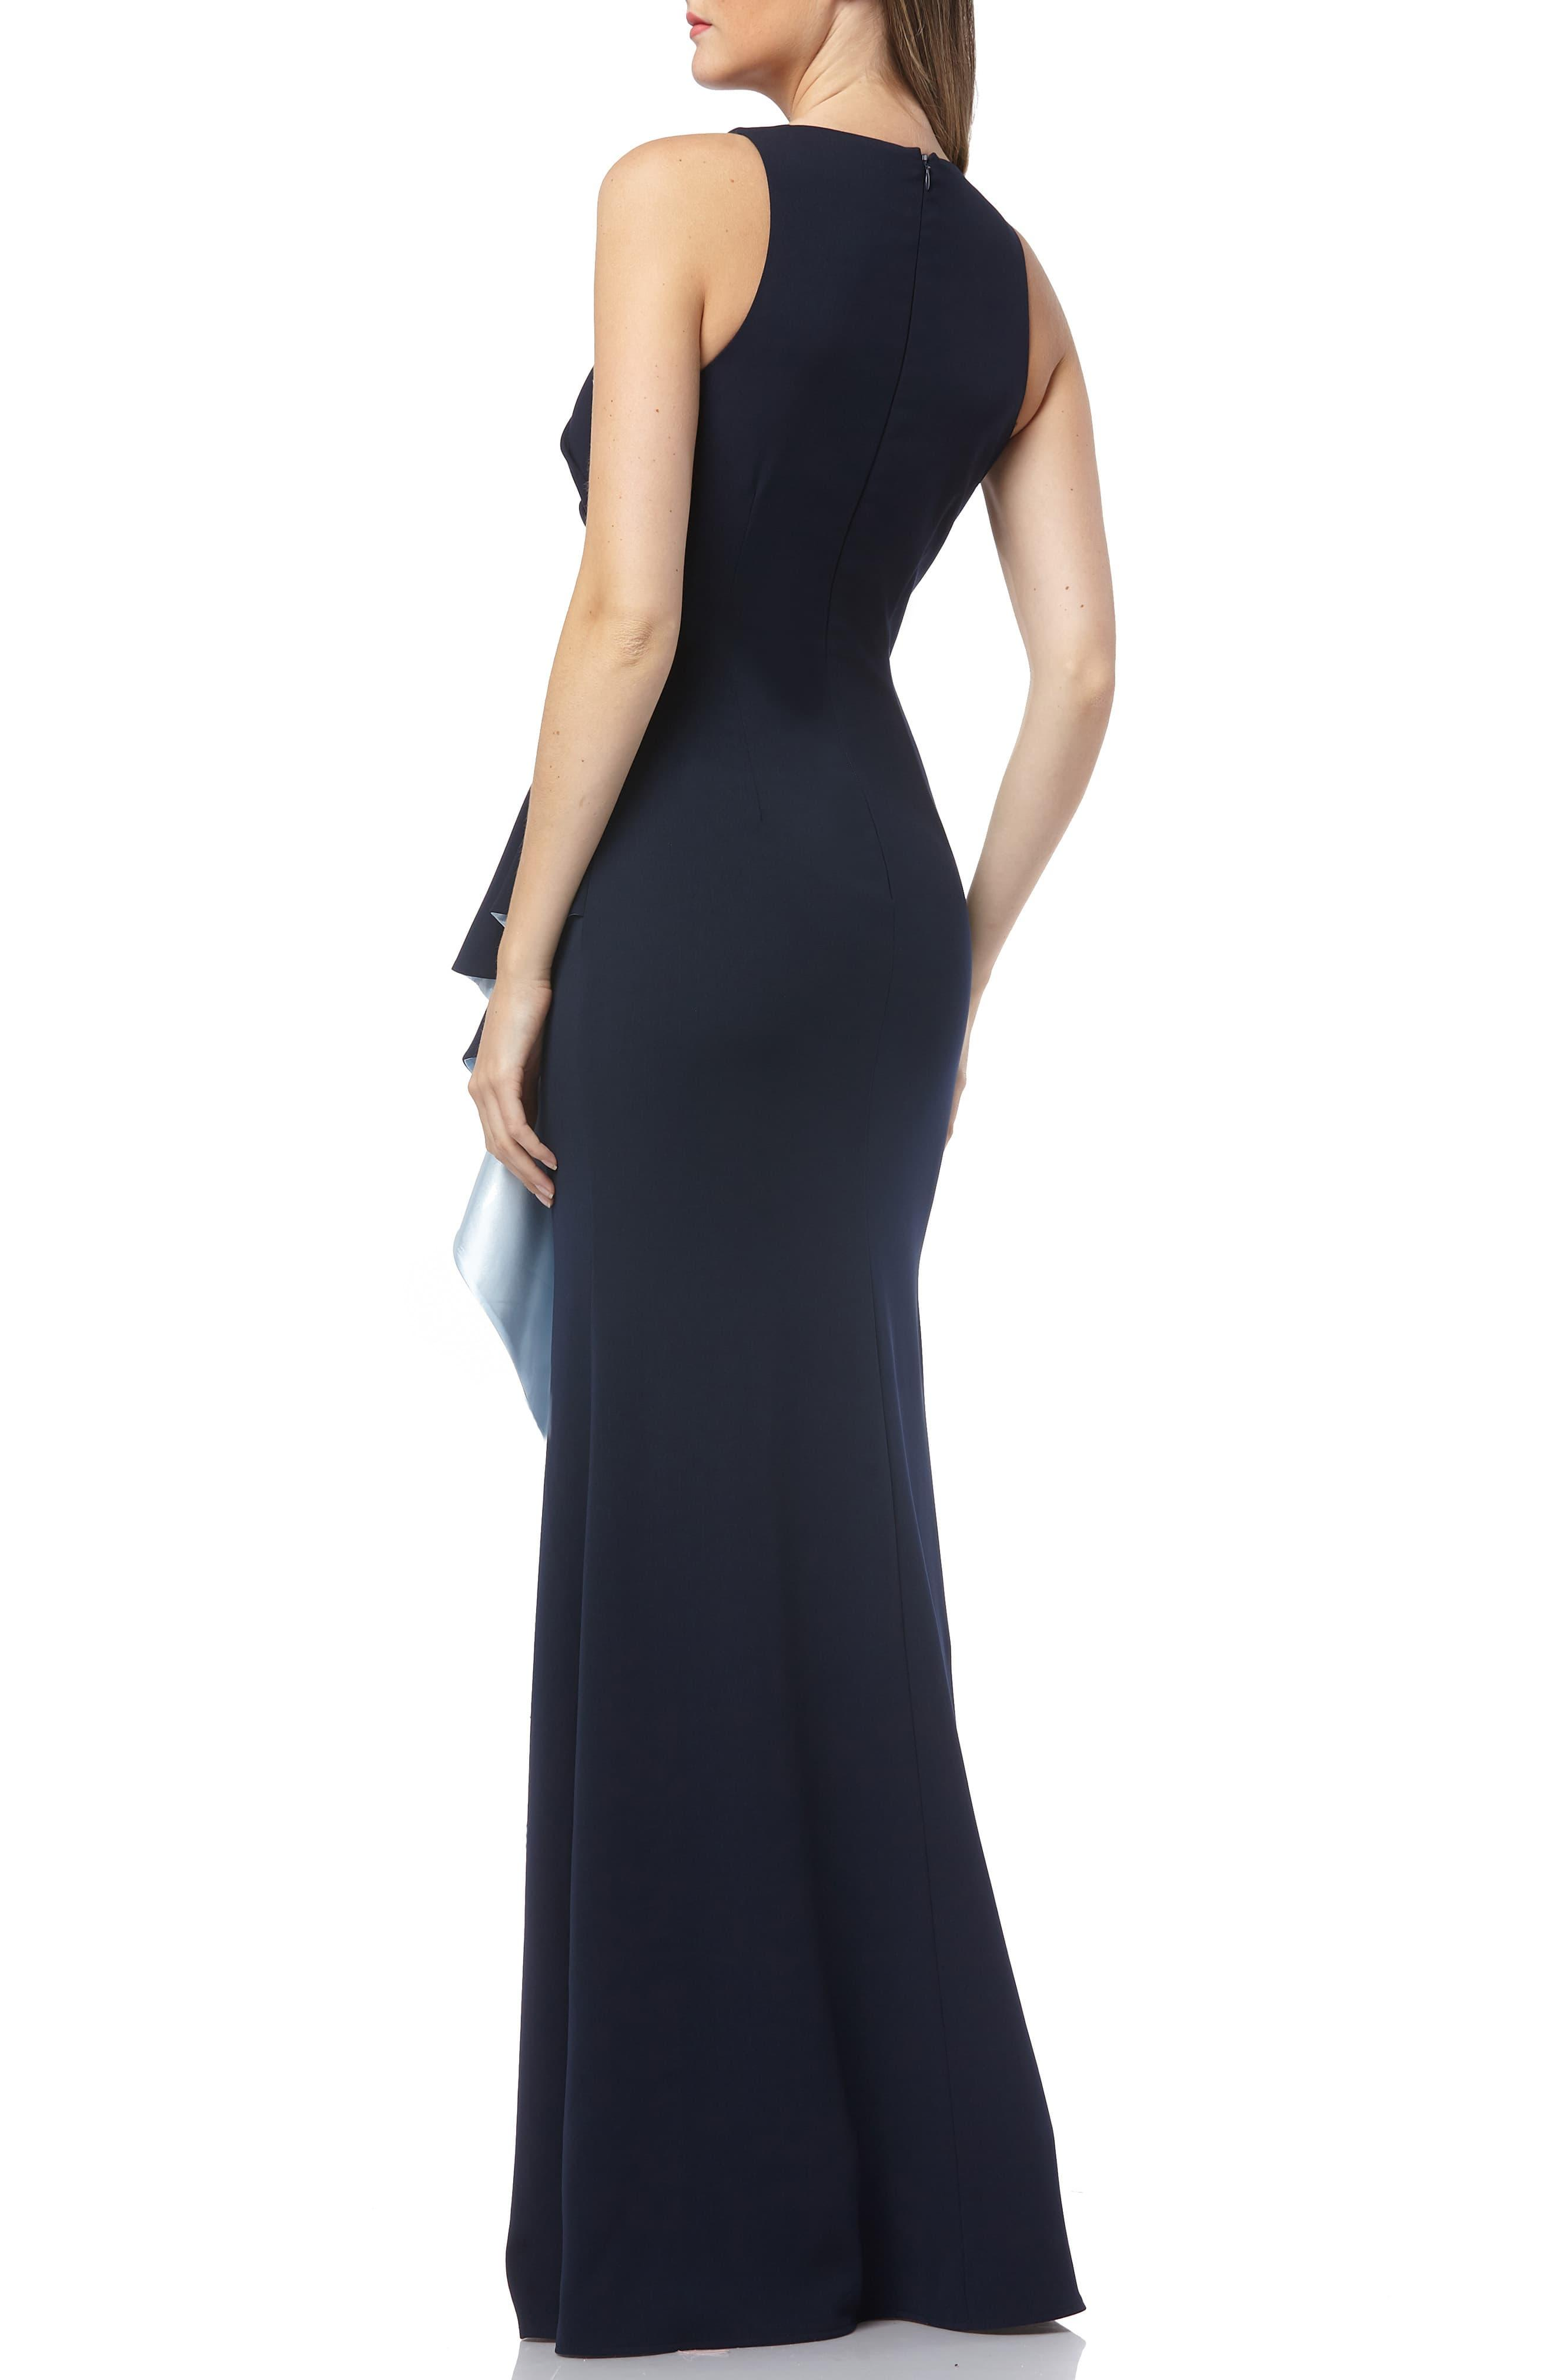 0f8b495277d94 ... Carmen Marc Valvo Couture Infusion Ruffle Gown - Lyst. View fullscreen